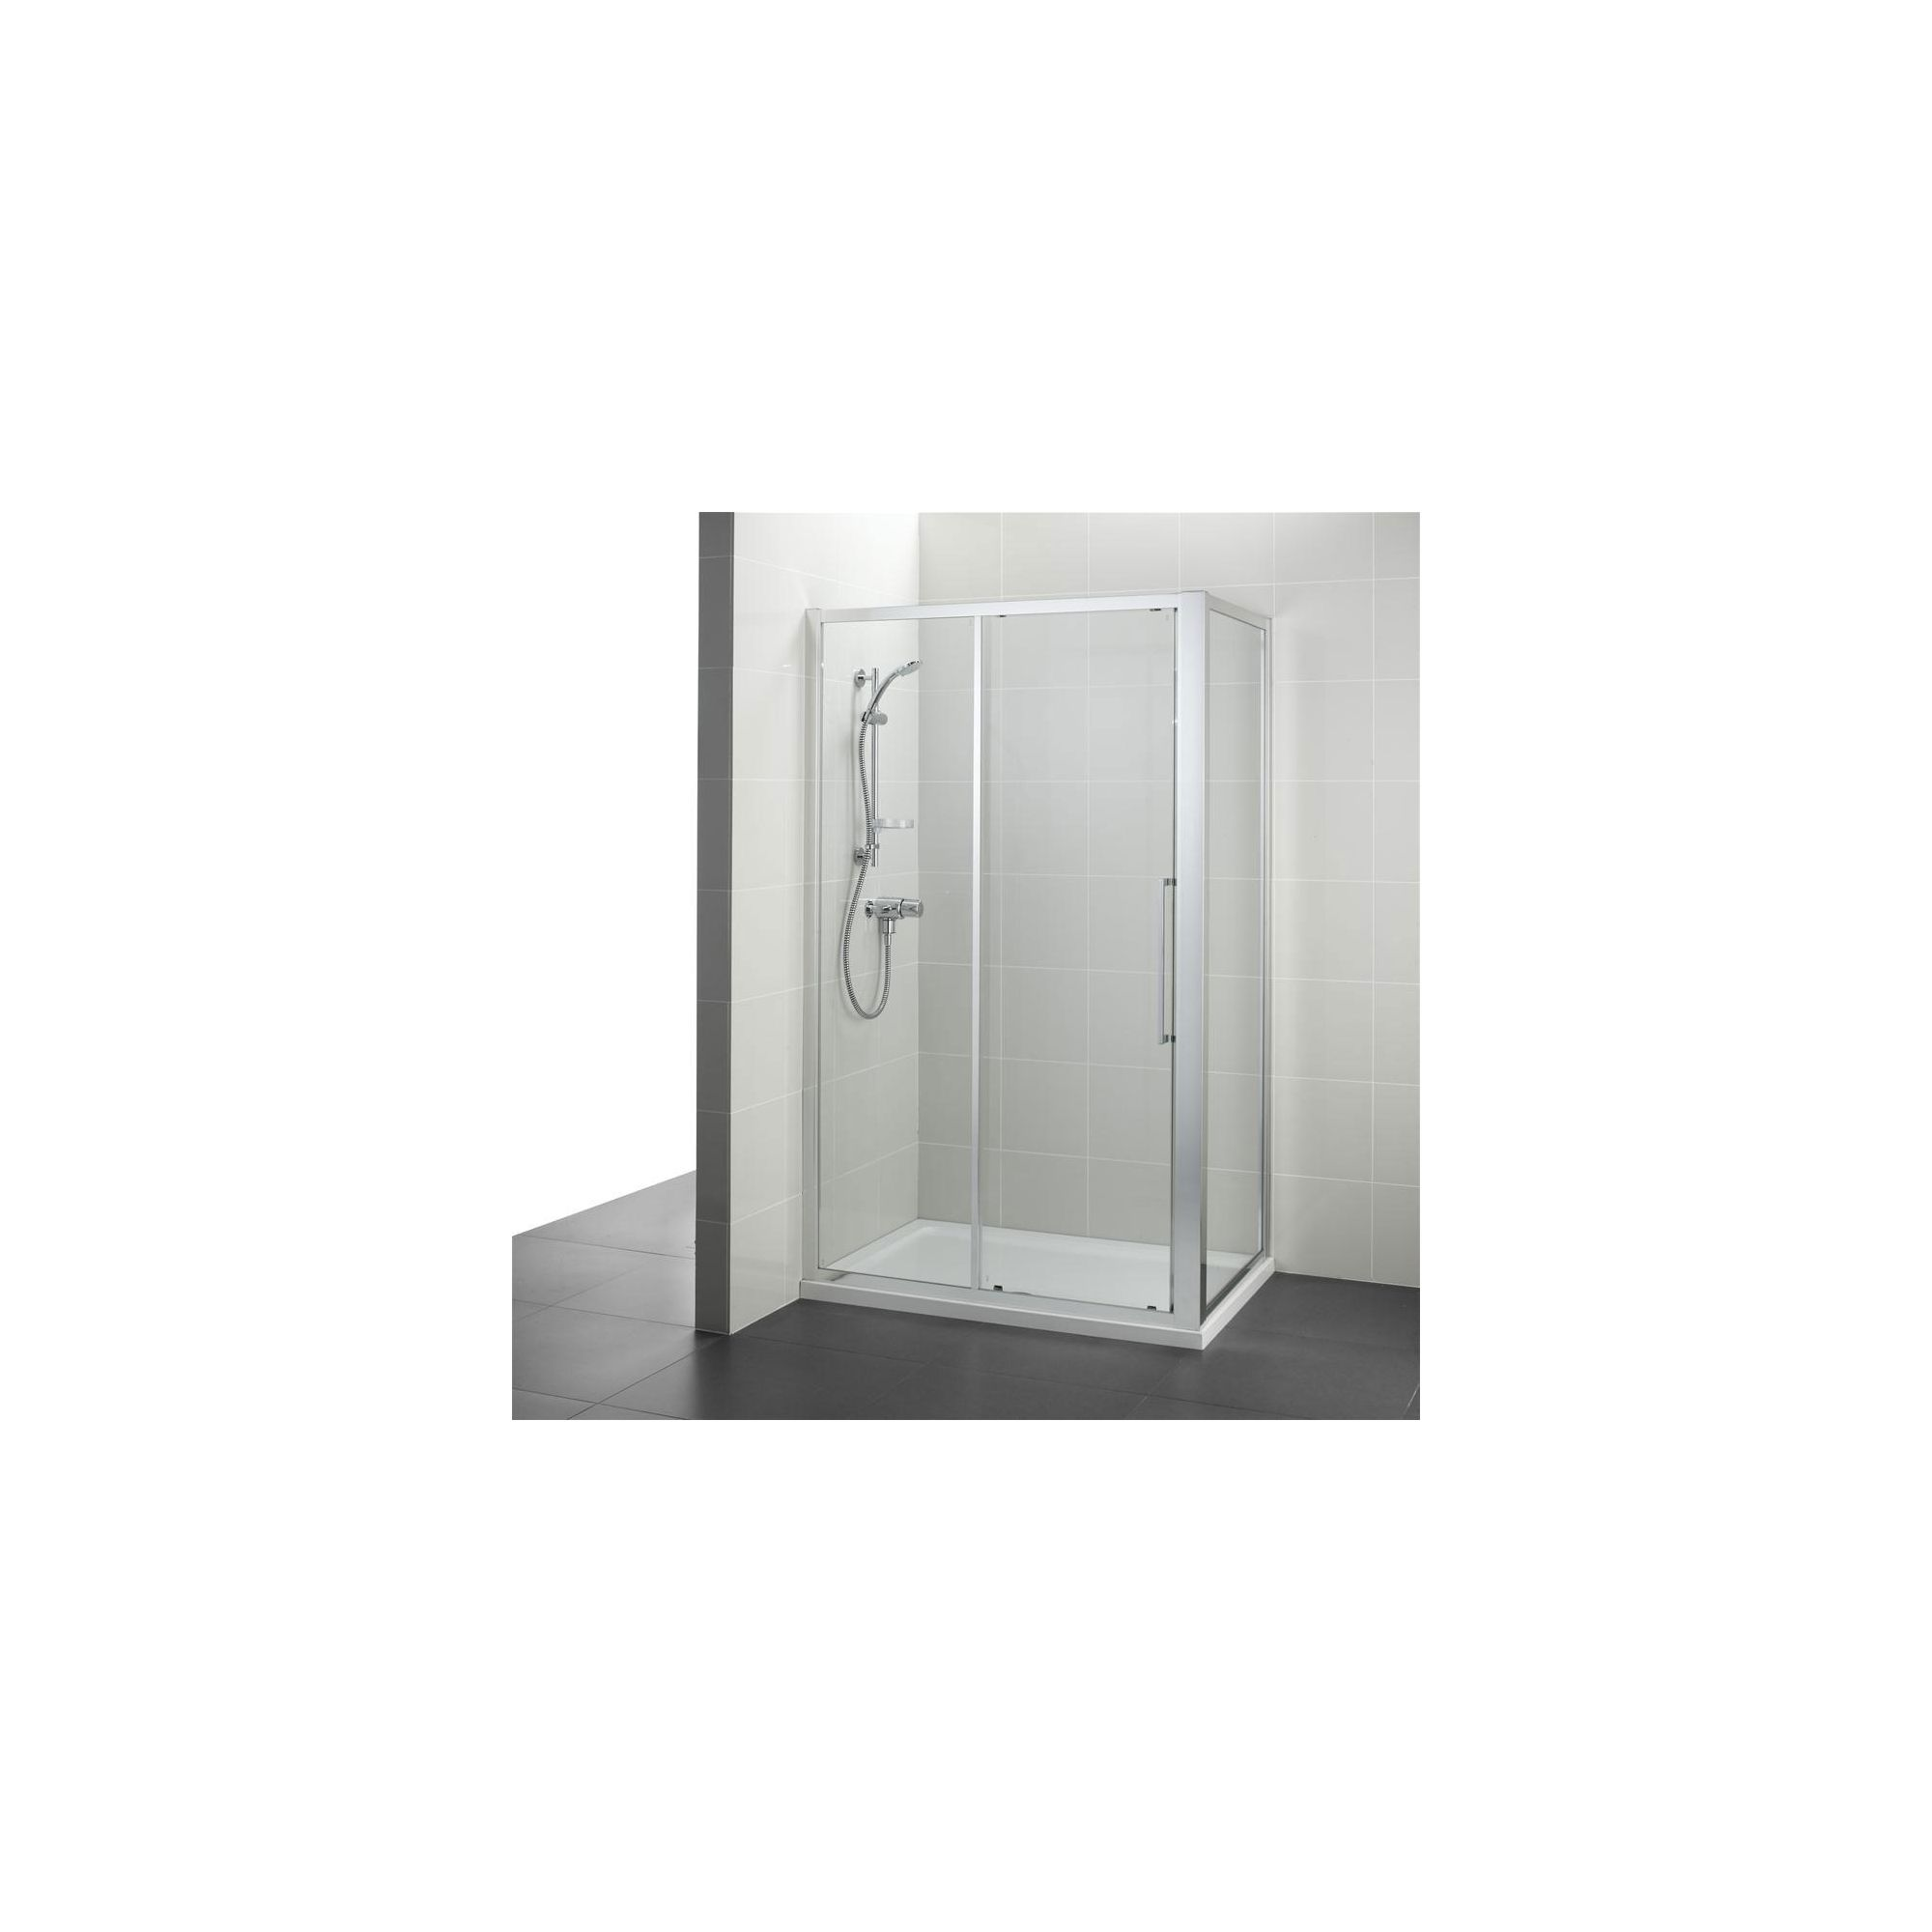 Ideal Standard Kubo Sliding Door Shower Enclosure, 1000mm x 800mm, Bright Silver Frame, Low Profile Tray at Tescos Direct